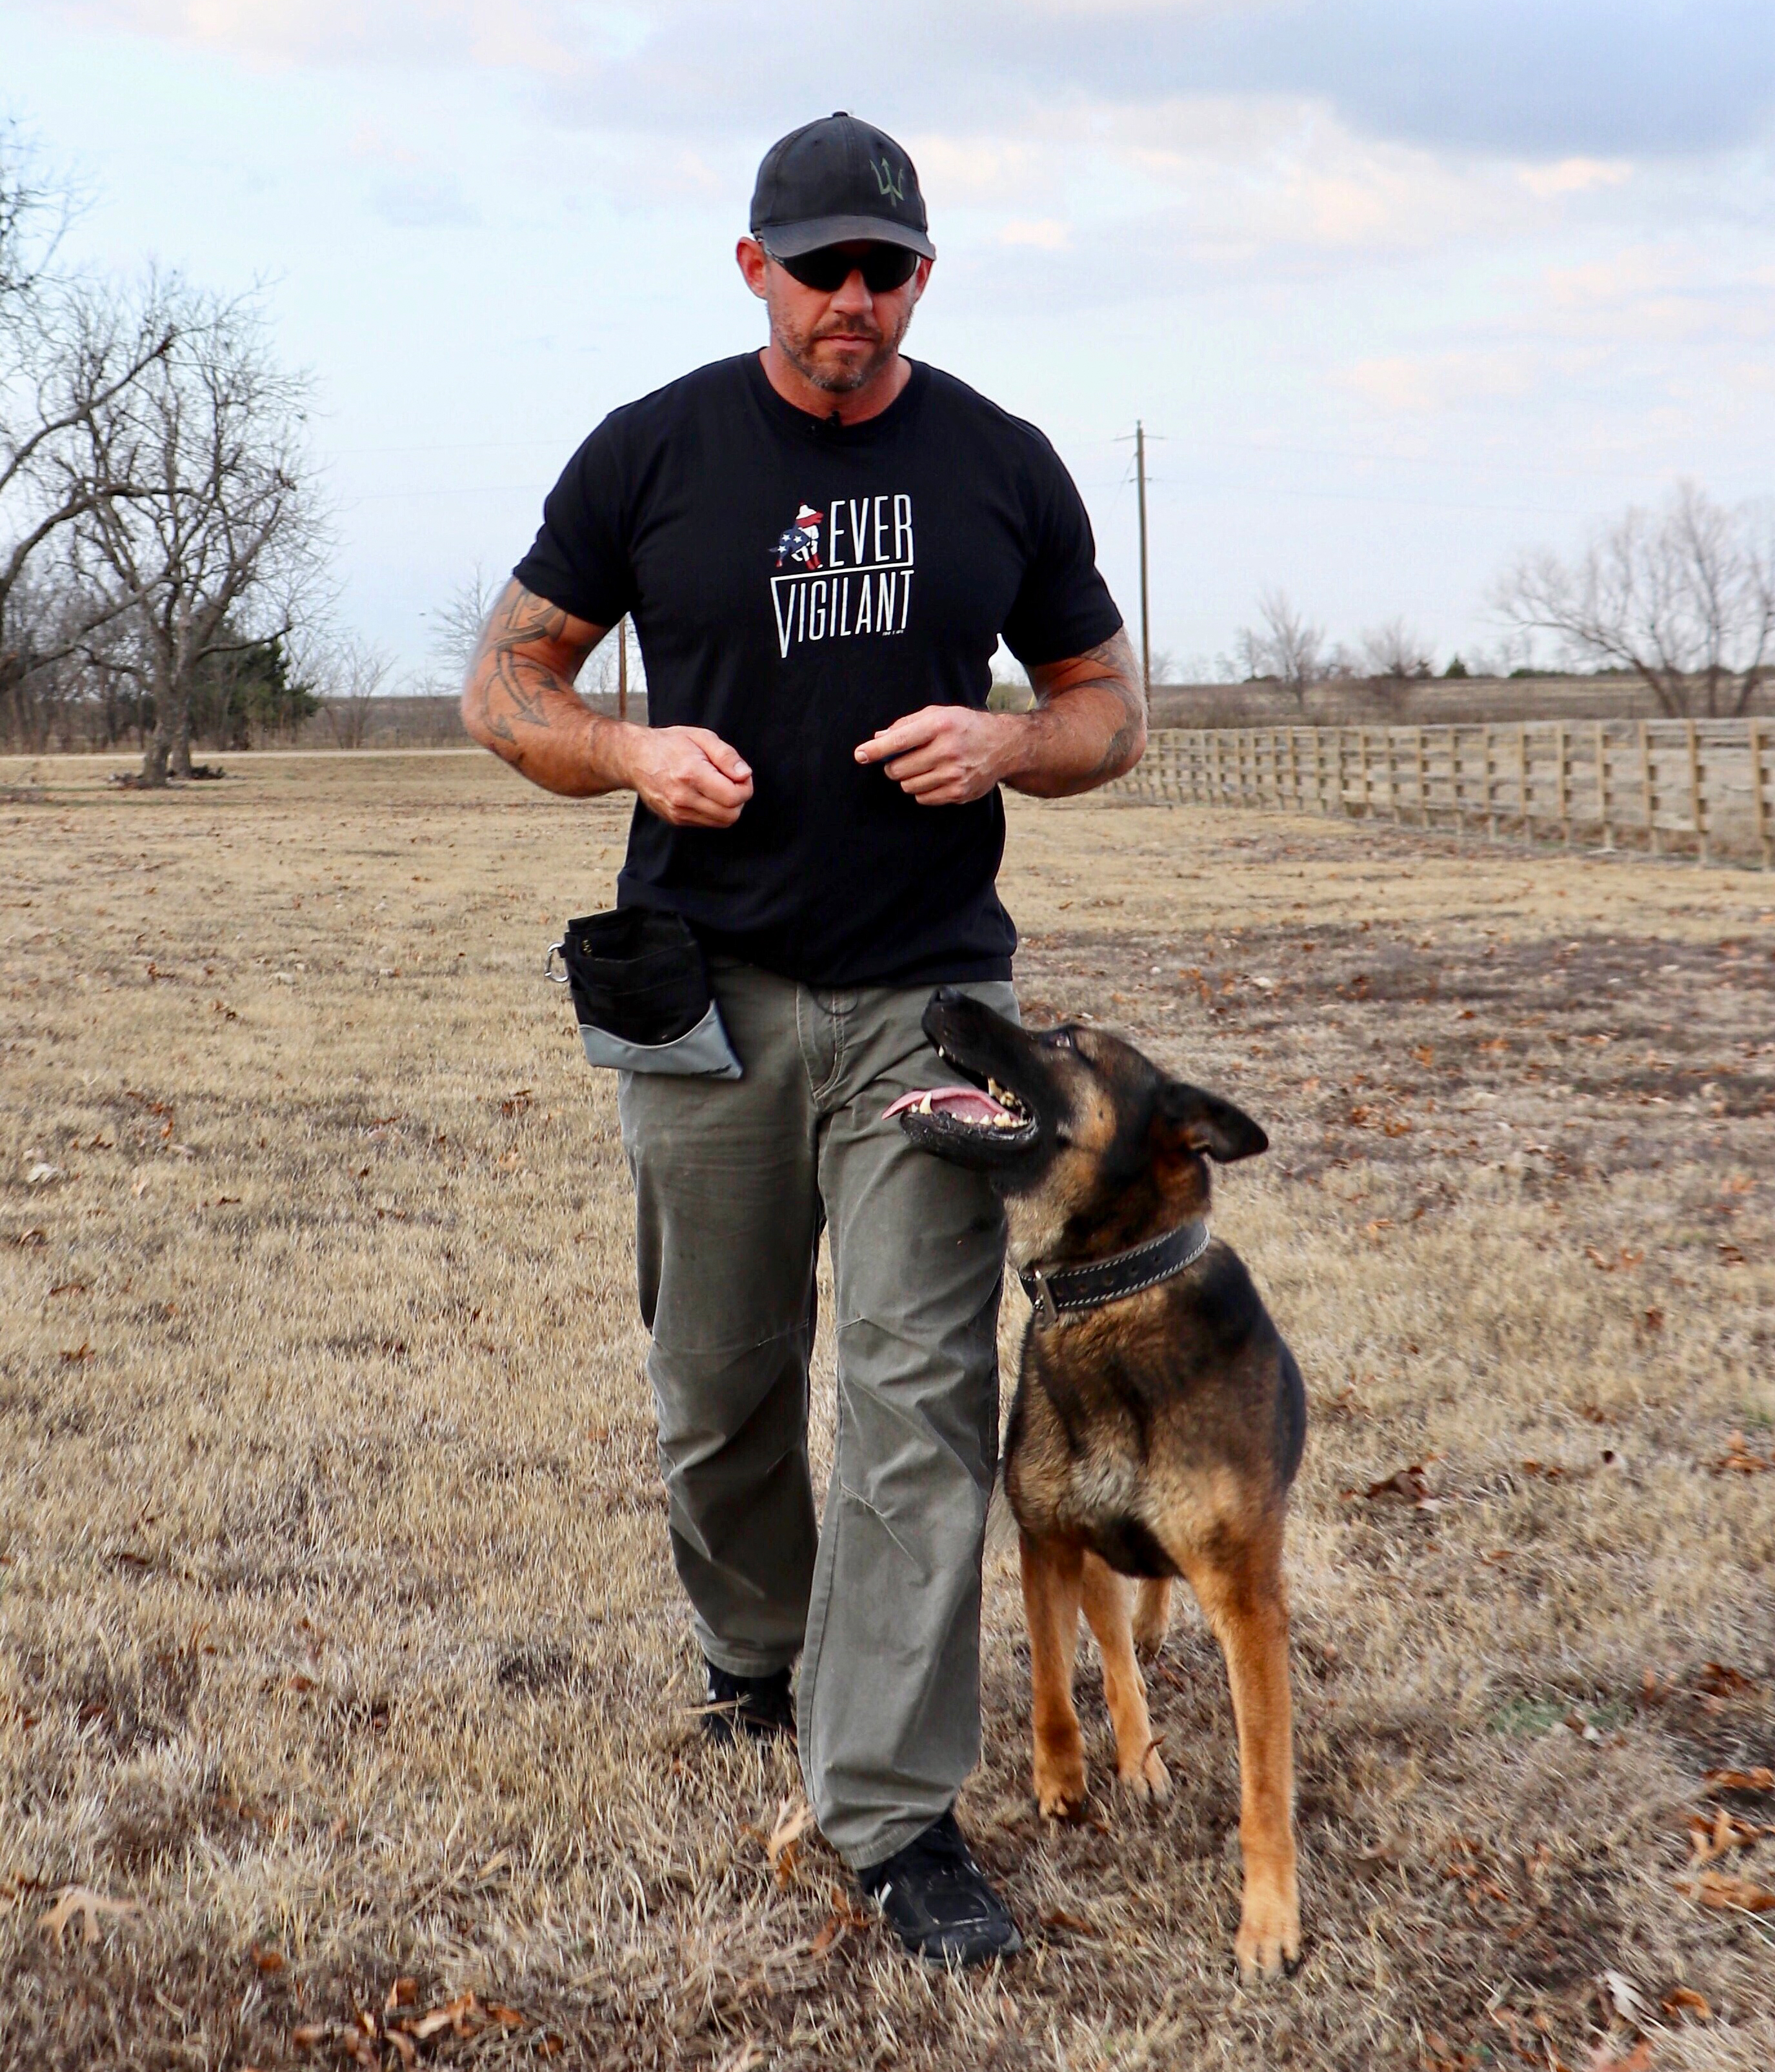 mike ritland running with dog in field